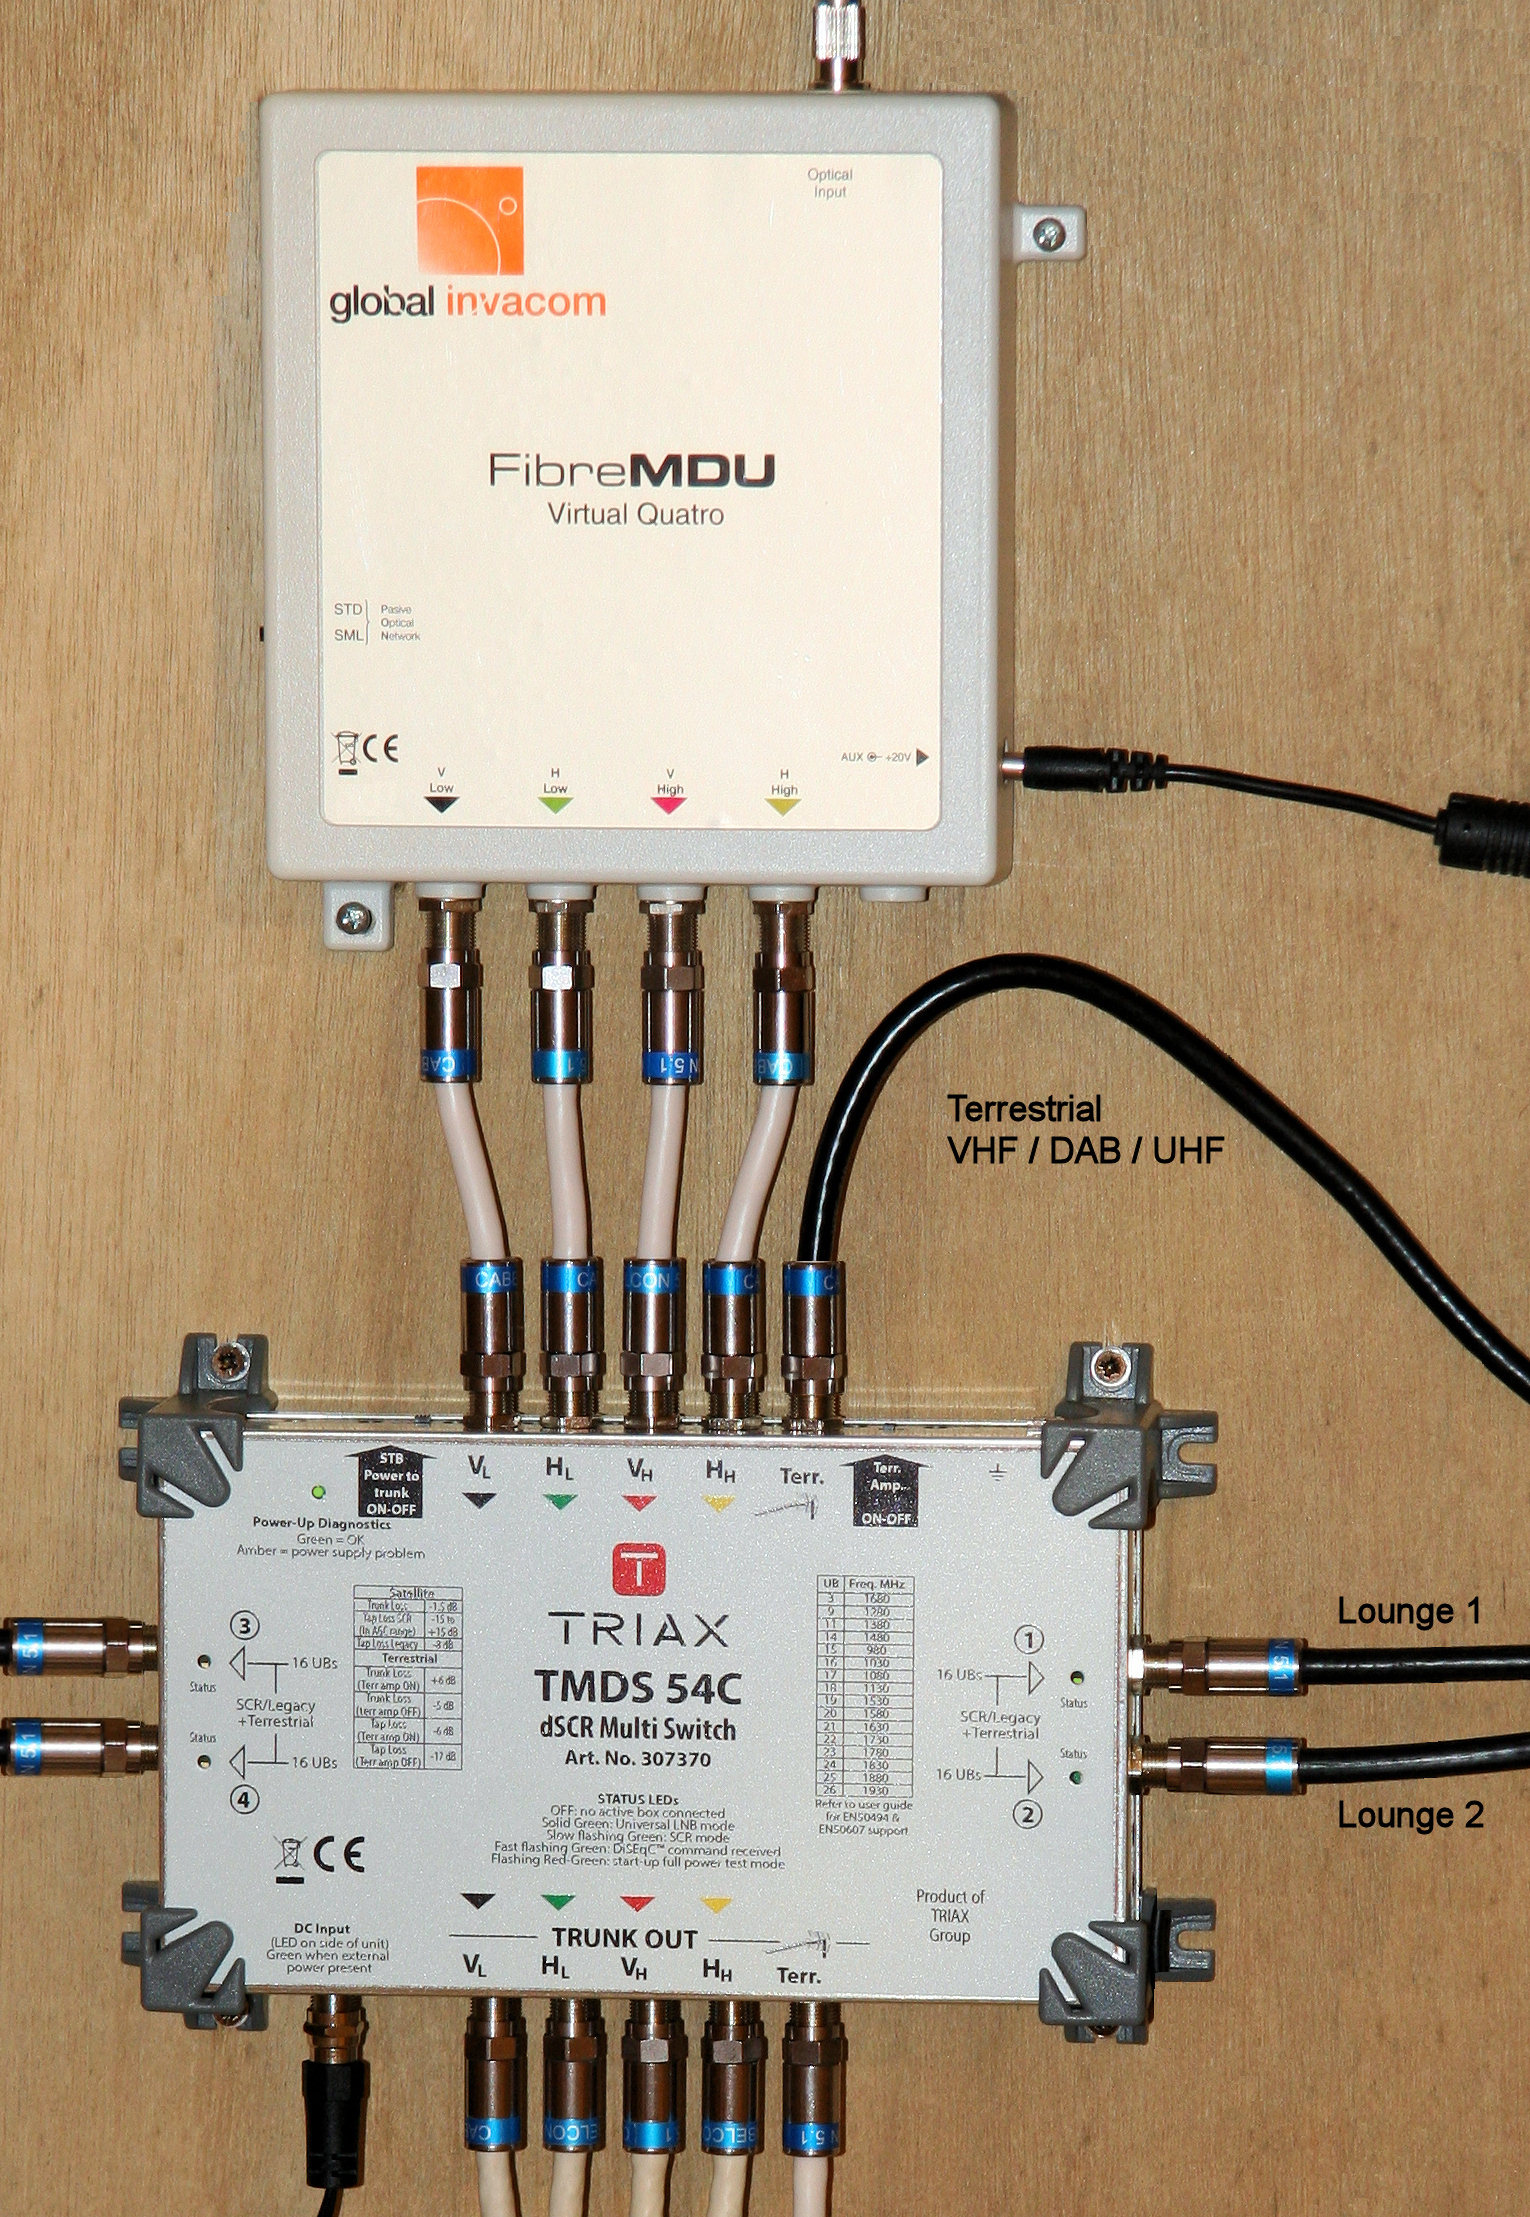 21550i565FE79BBCCBC04C?v=1.0 sky q and distibution multiswitch sky community triax multiswitch wiring diagram at crackthecode.co